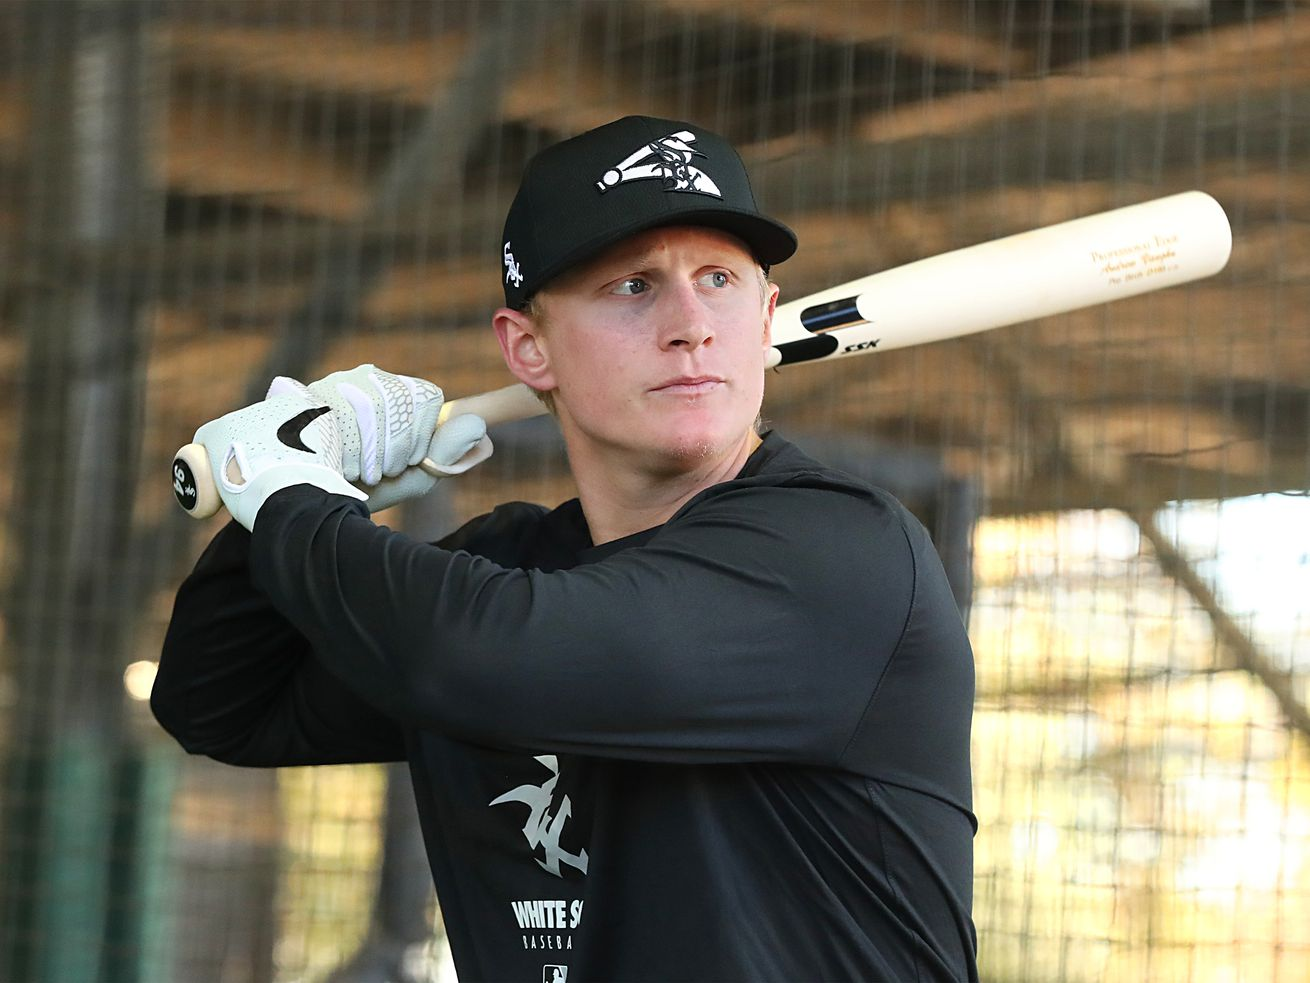 White Sox outfielder-first baseman Andrew Vaughn went on the injured list Thursday.